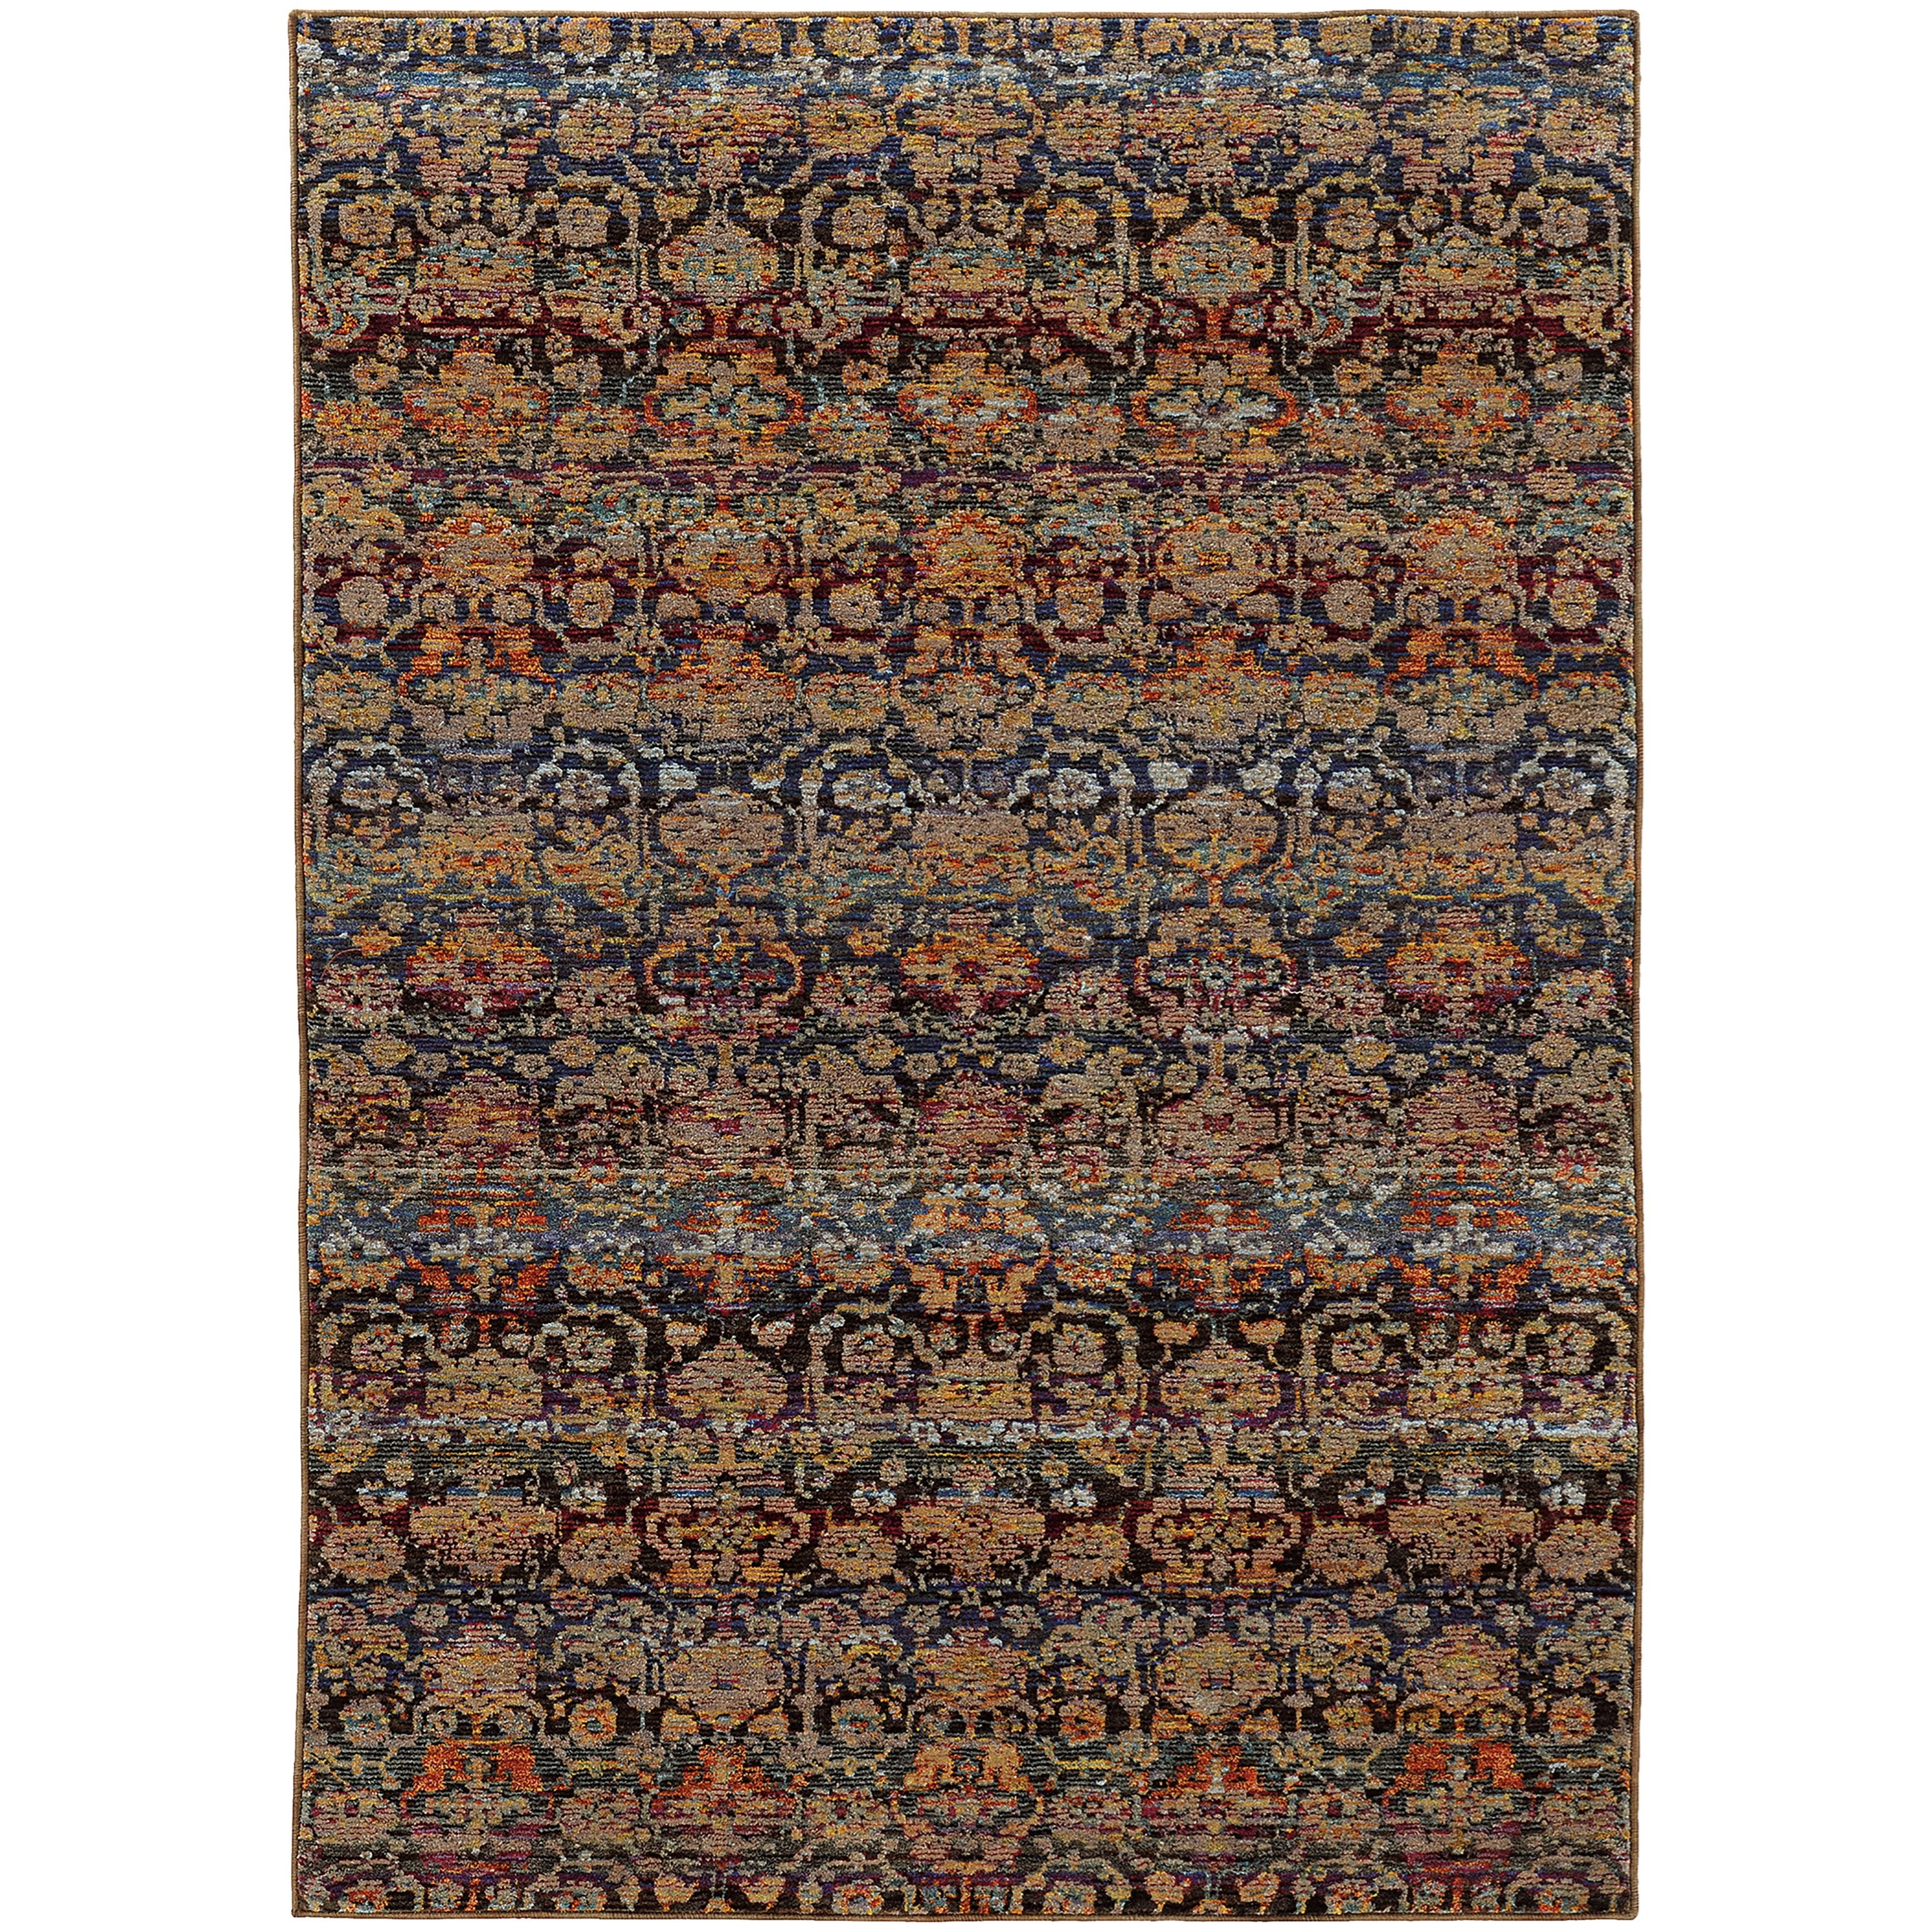 """Andorra 8' 6"""" X 11' 7"""" Casual Multi/ Blue Rectangle  by Oriental Weavers at Steger's Furniture"""